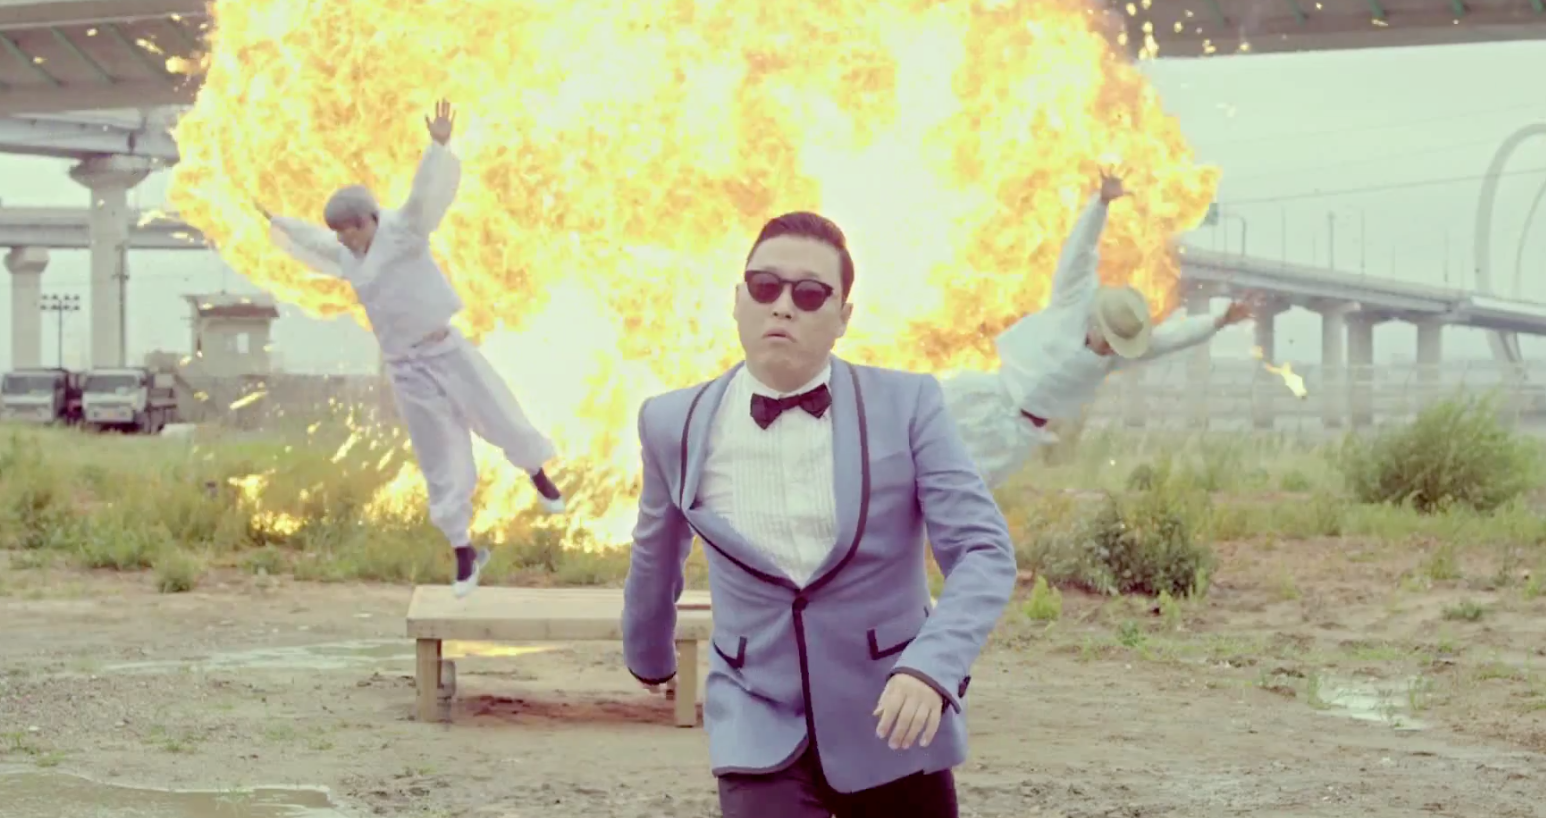 psy_walks_away_from_an_explosion